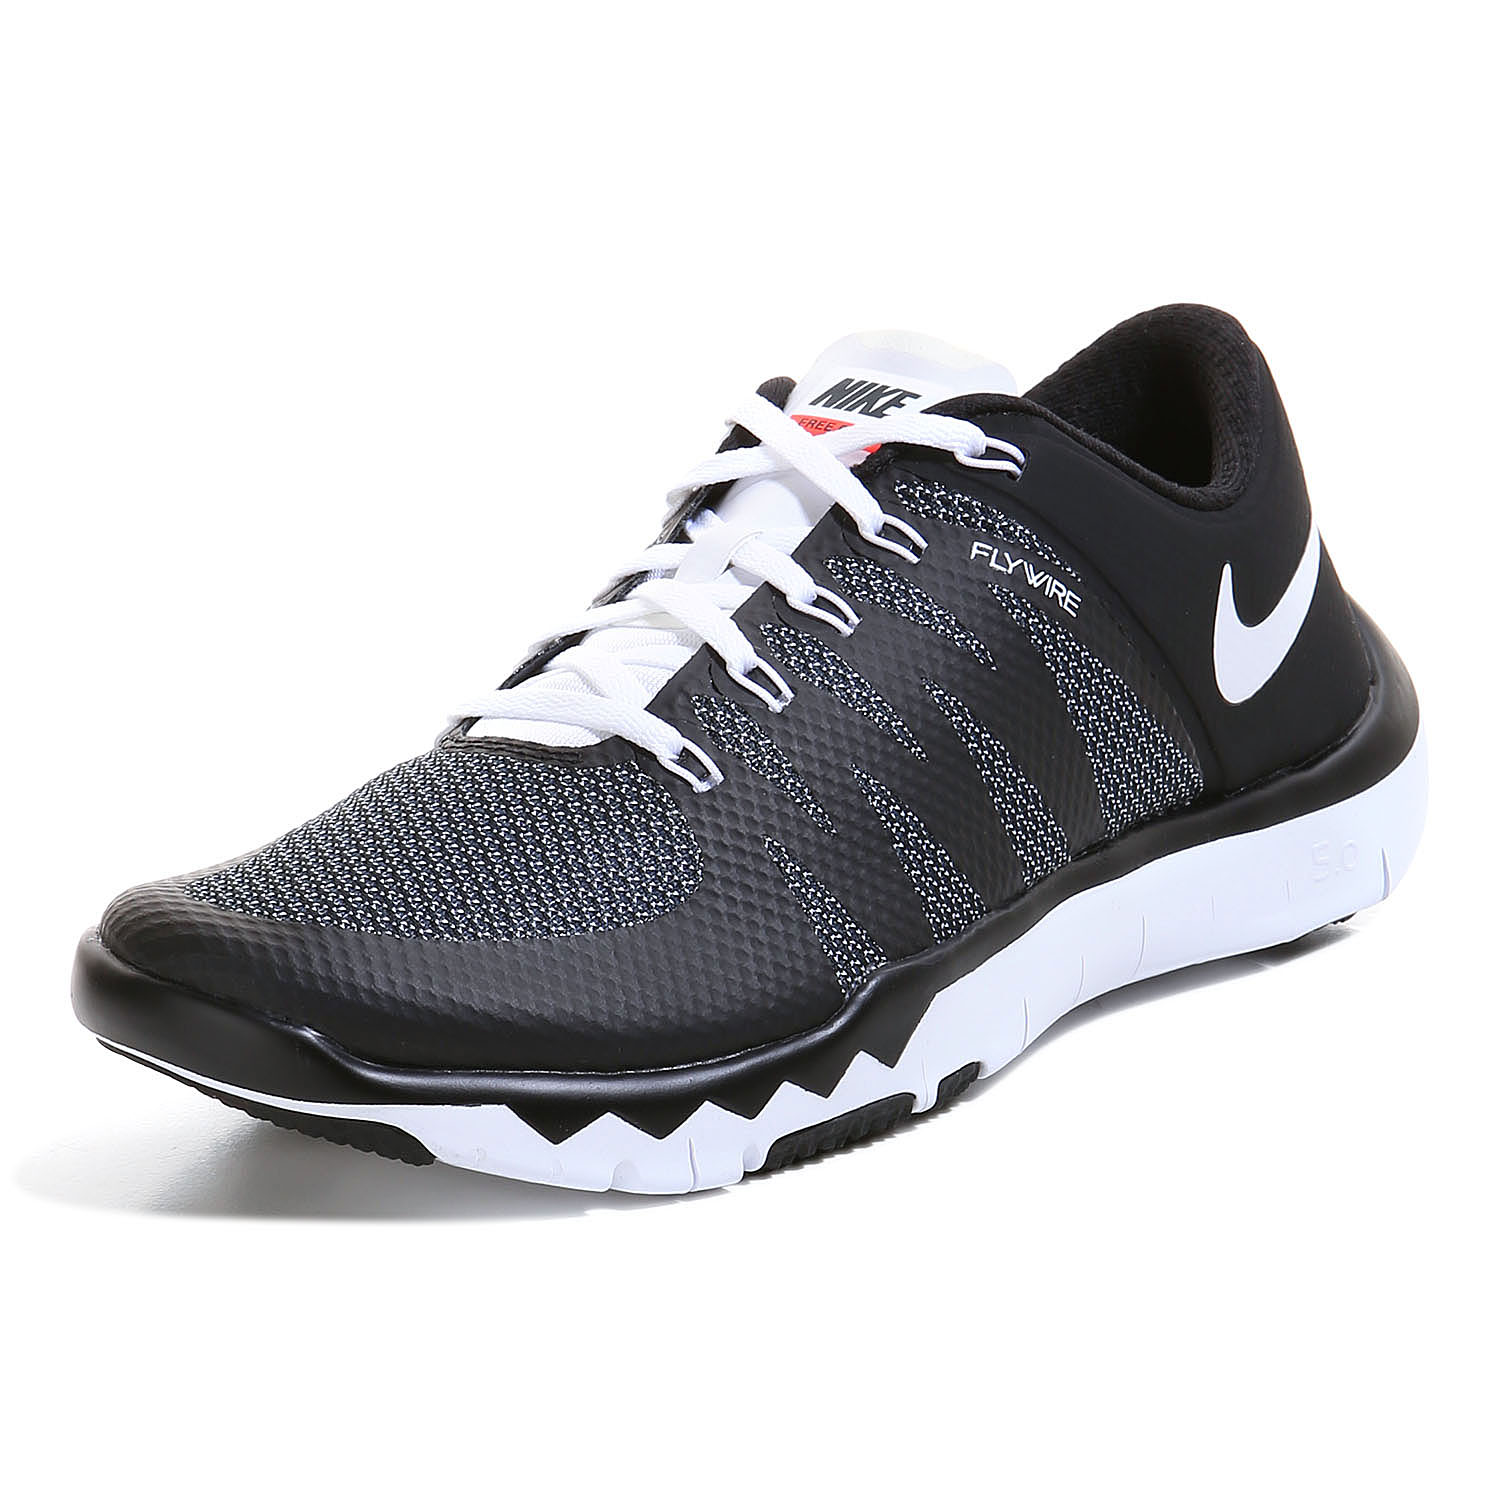 Qts7obw Hom 5 Chaussures Basses De Nike Free 0 Trainer Training vN0mwO8n